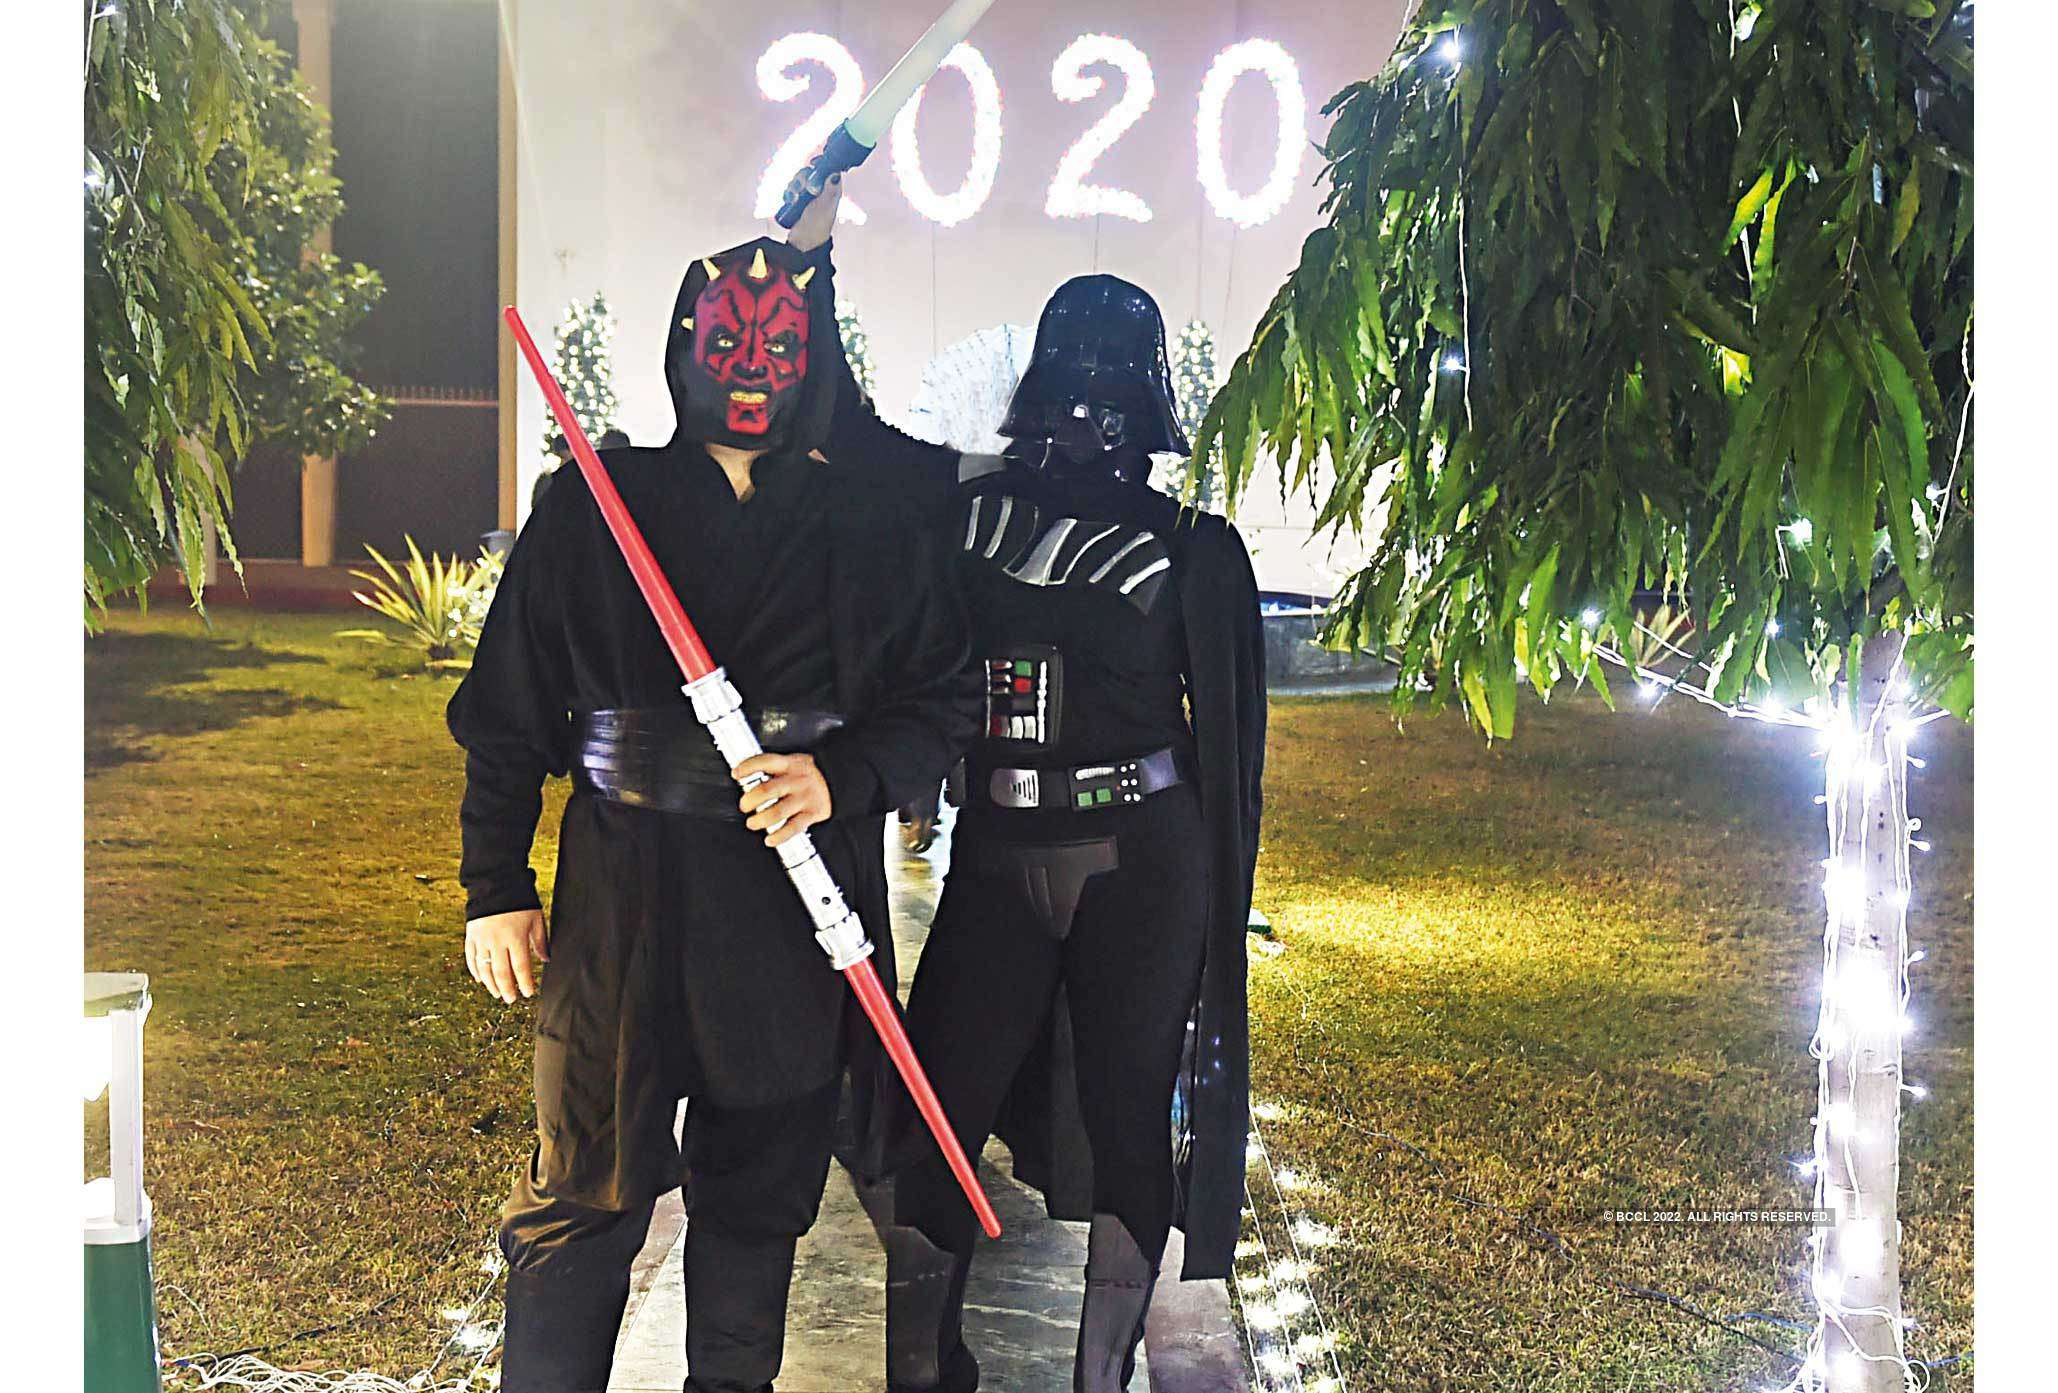 Alexander Feoktistov, Councellor, Russian embassy, and his wife  Ksenia Feoktistova dressed as Star Wars' Darth Vader and Darth Maul